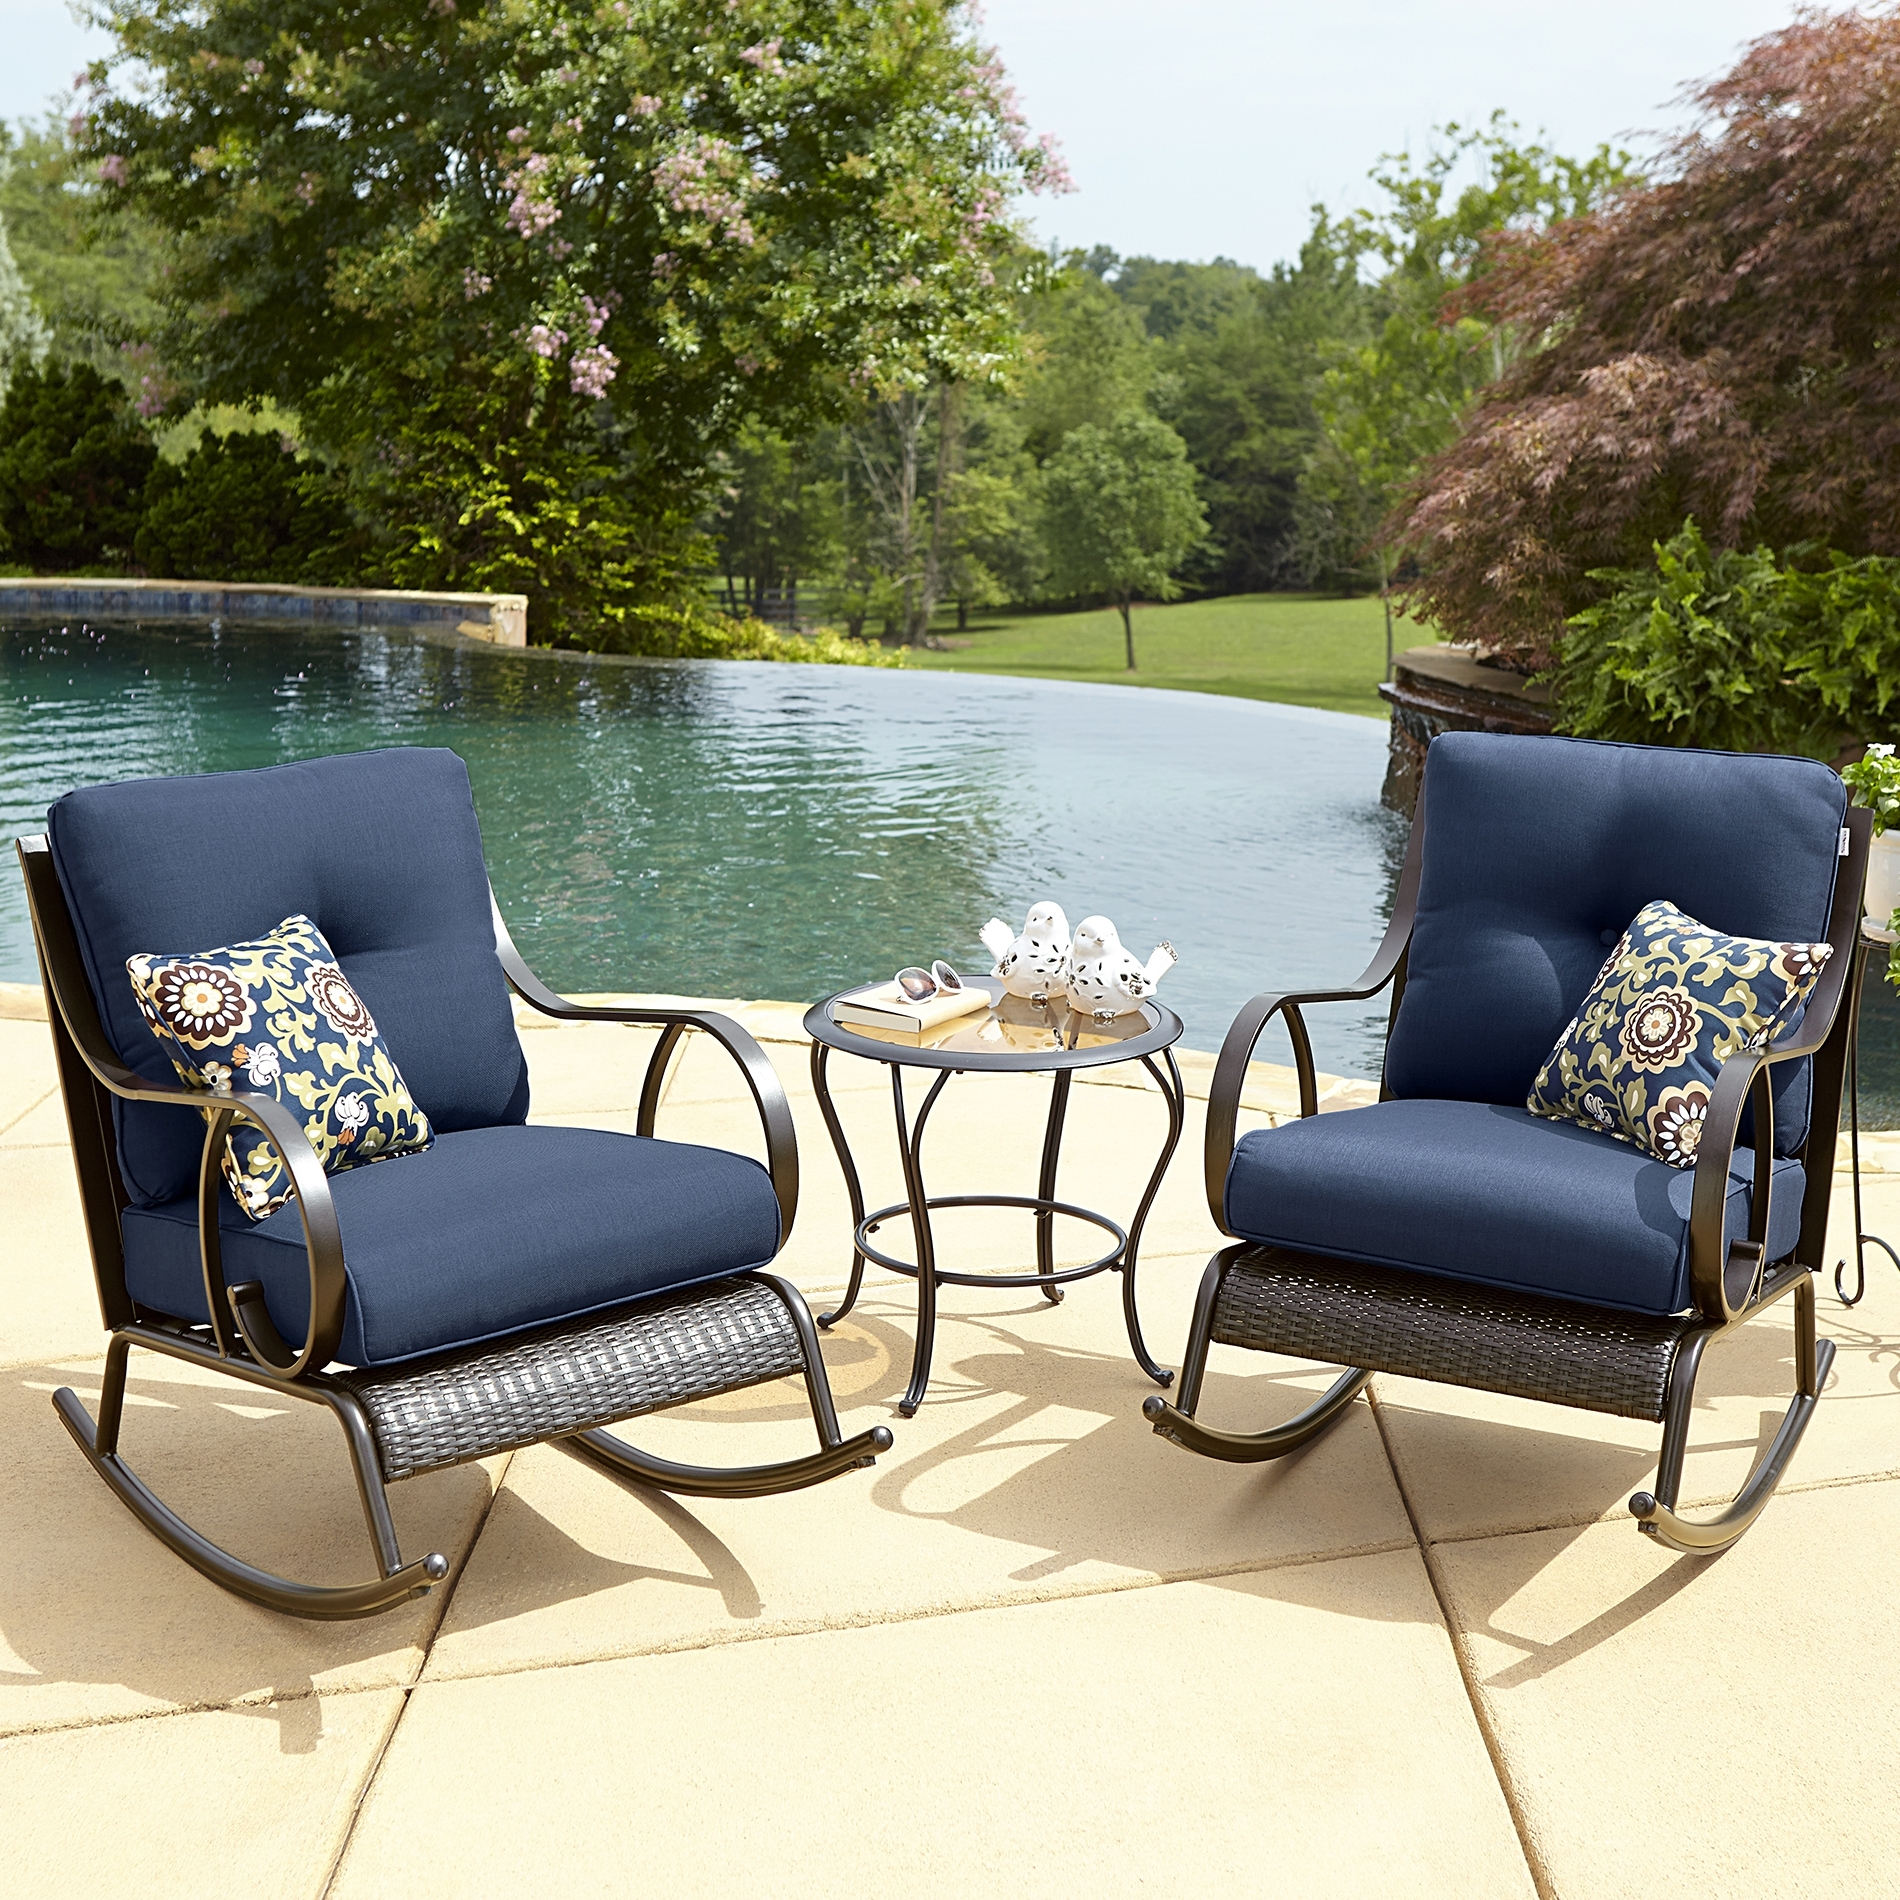 Boy Outdoor Avery Piece Bistro Rocking Chair Set Blue Kmart Prod Intended For Best And Newest Outdoor Rocking Chairs With Table (View 9 of 20)